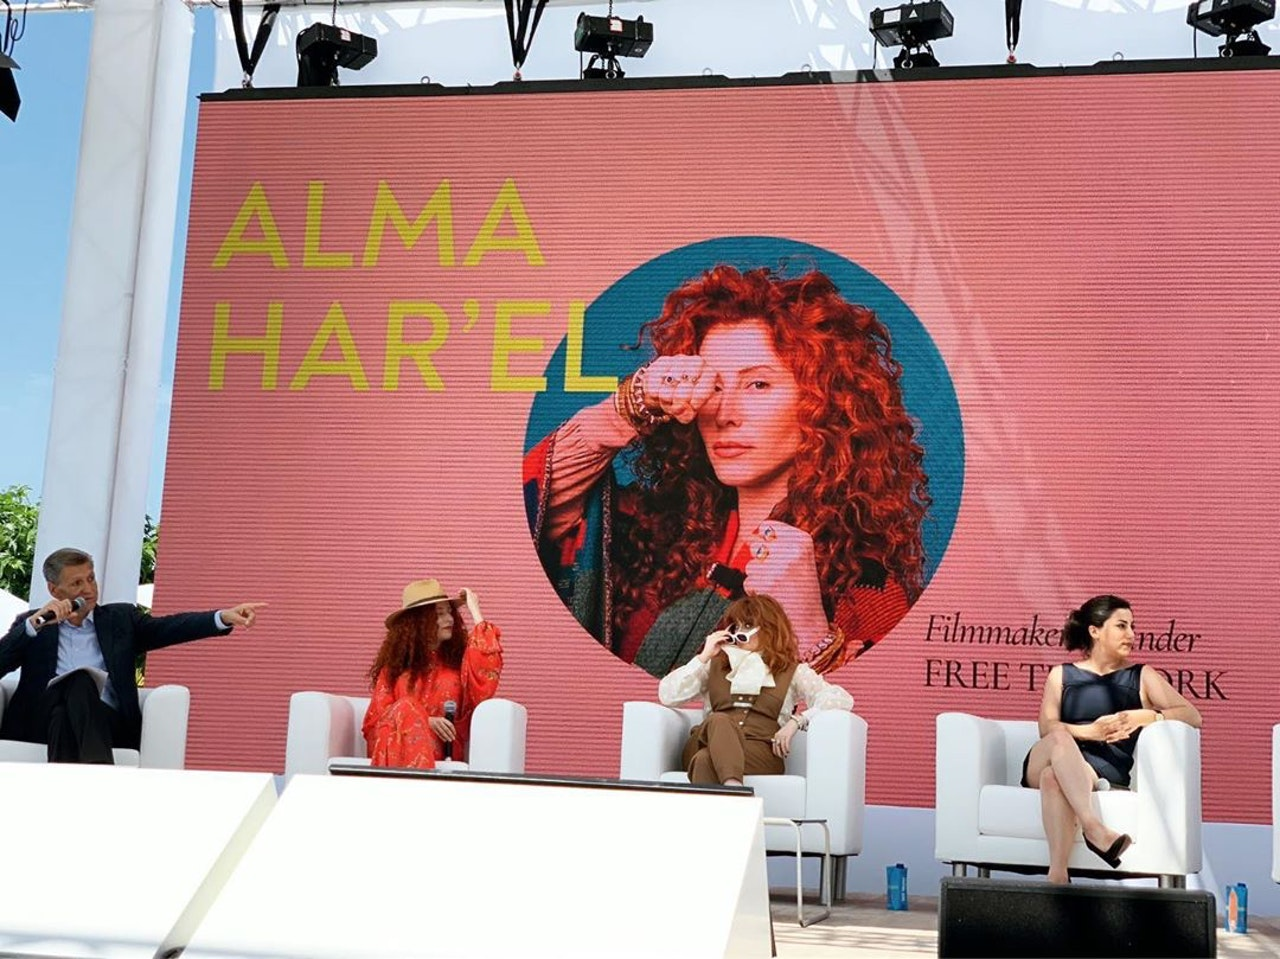 """Alma unveils FREETHEWORK at Cannes Lions with a panel """"Reimagining Creativity through Free The Work""""."""